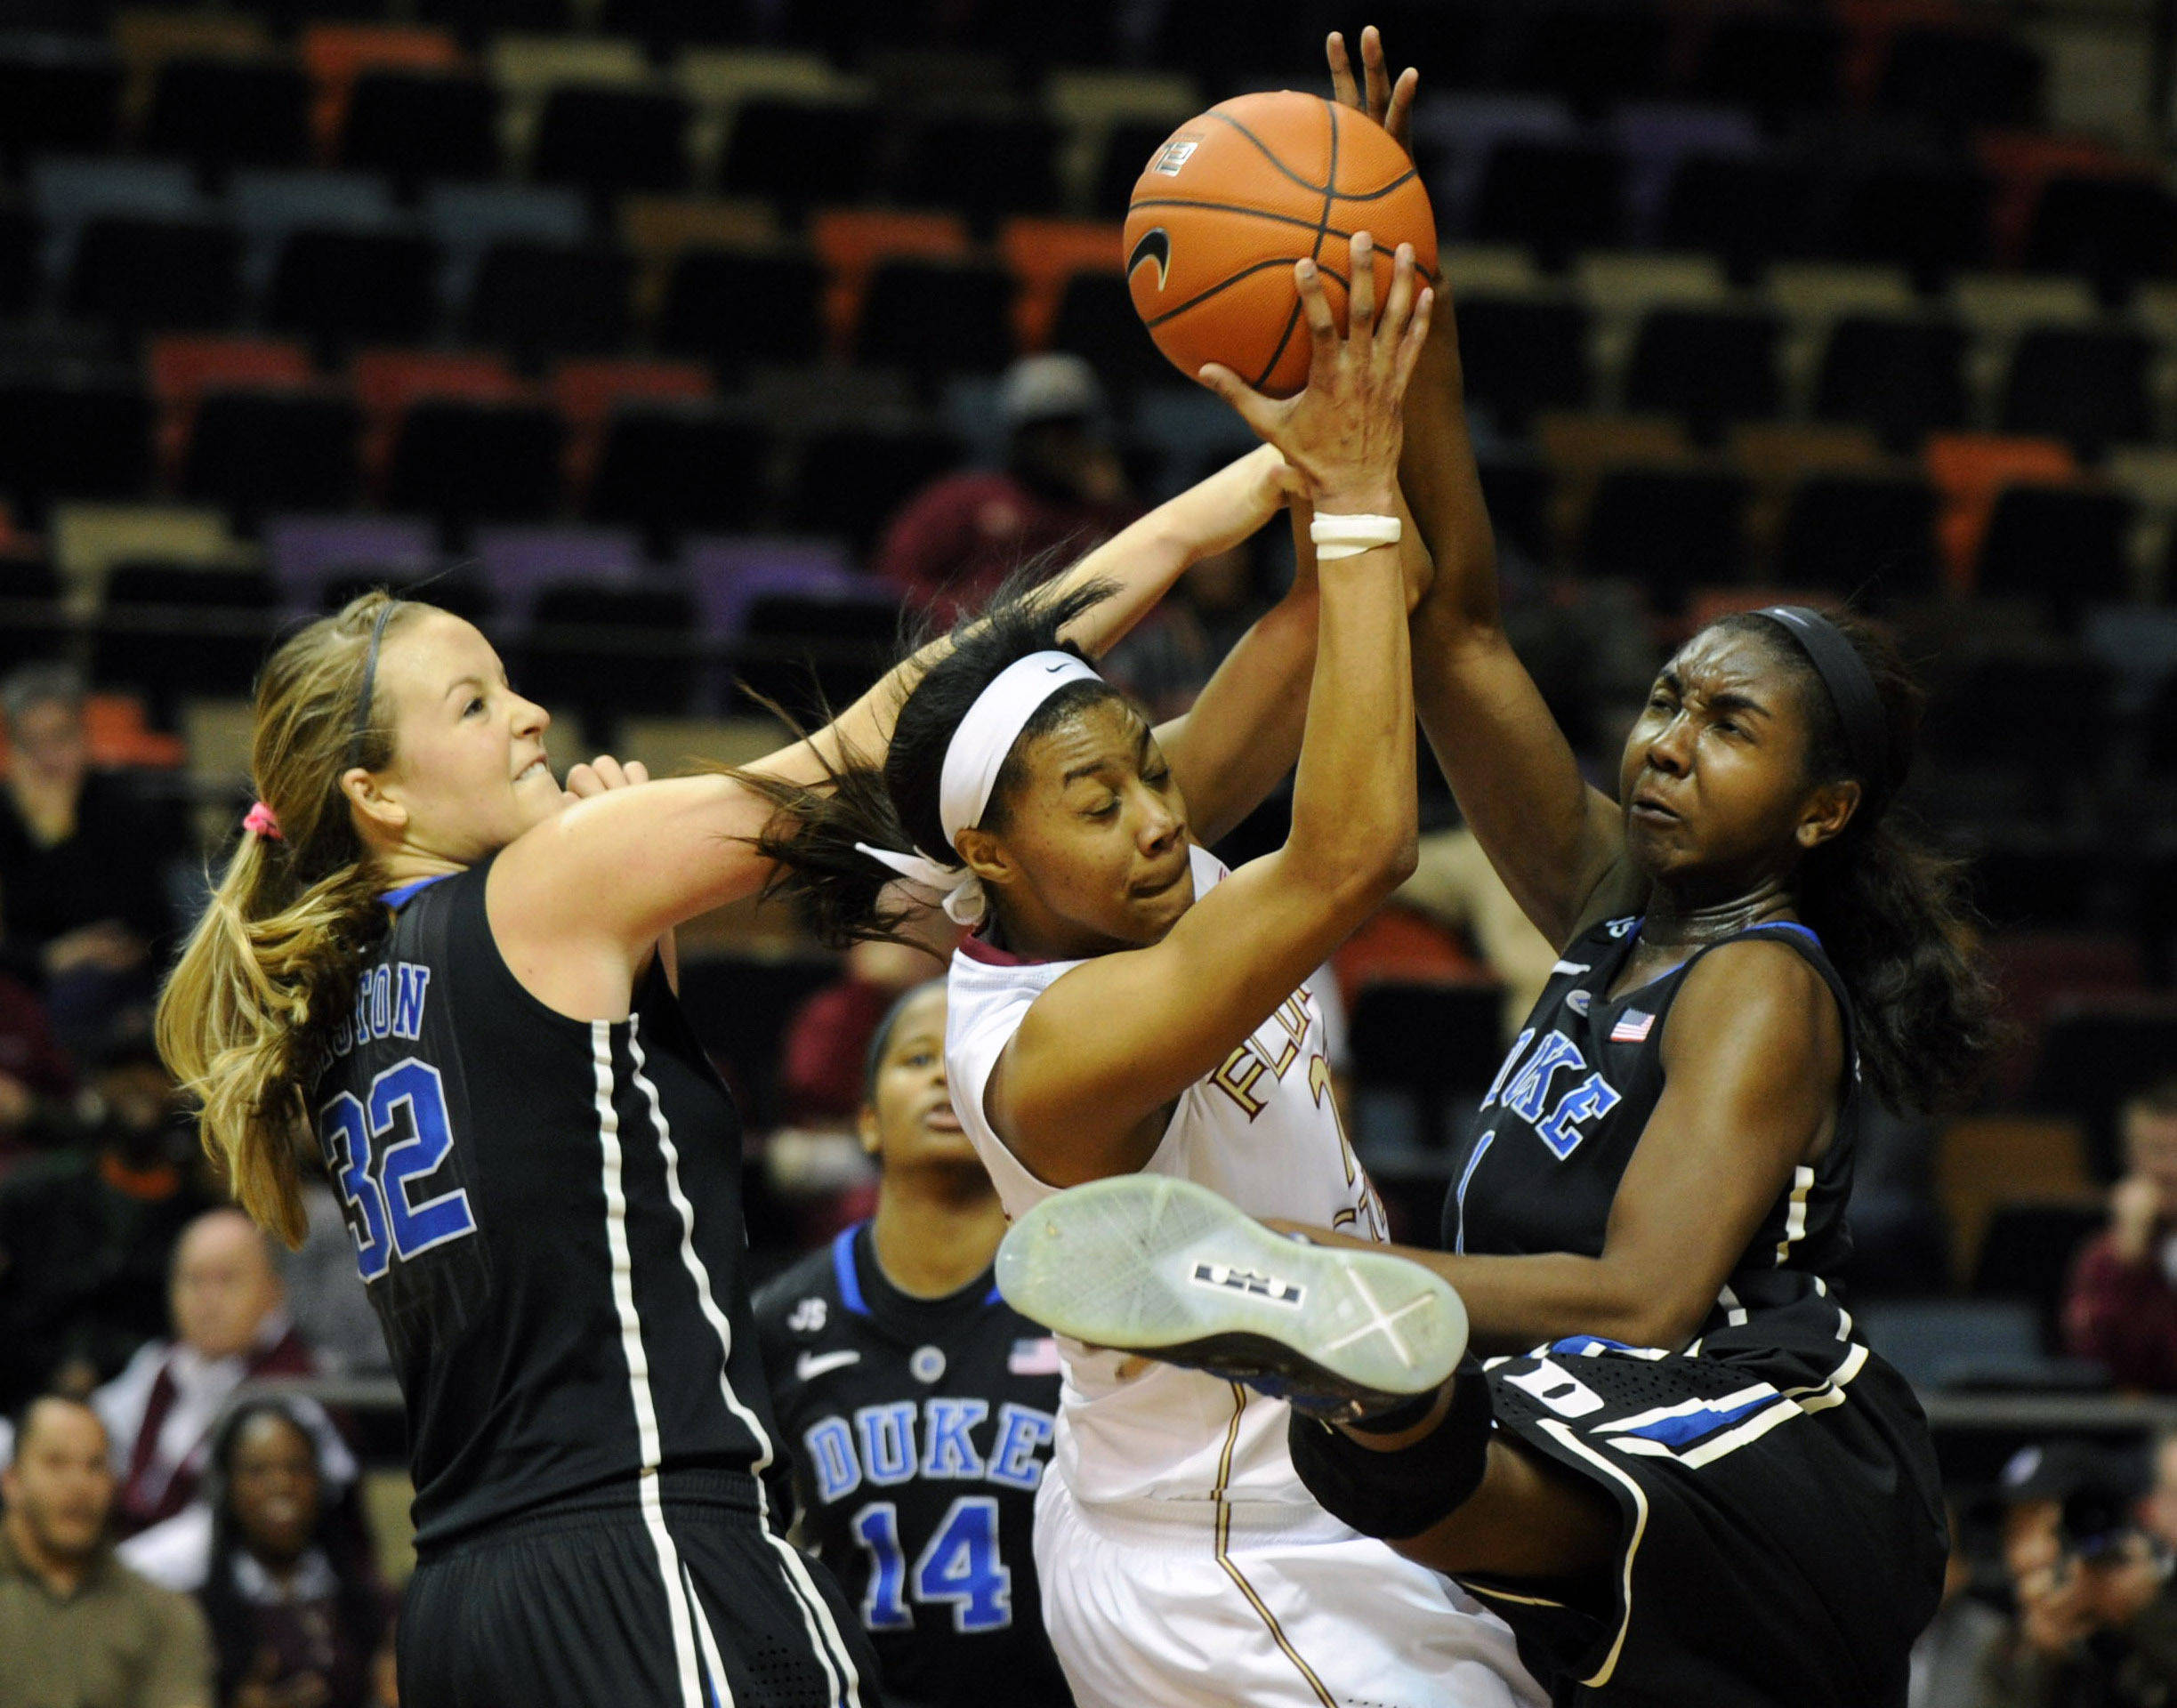 Jan 23, 2014; Tallahassee, FL, USA; Duke Blue Devils center Elizabeth Williams (1) and guard Tricia Liston (32) pressure Florida State Seminoles forward Ivey Slaughter (23) during the second half of the game at the Donald L. Tucker Center (Tallahassee). Mandatory Credit: Melina Vastola-USA TODAY Sports